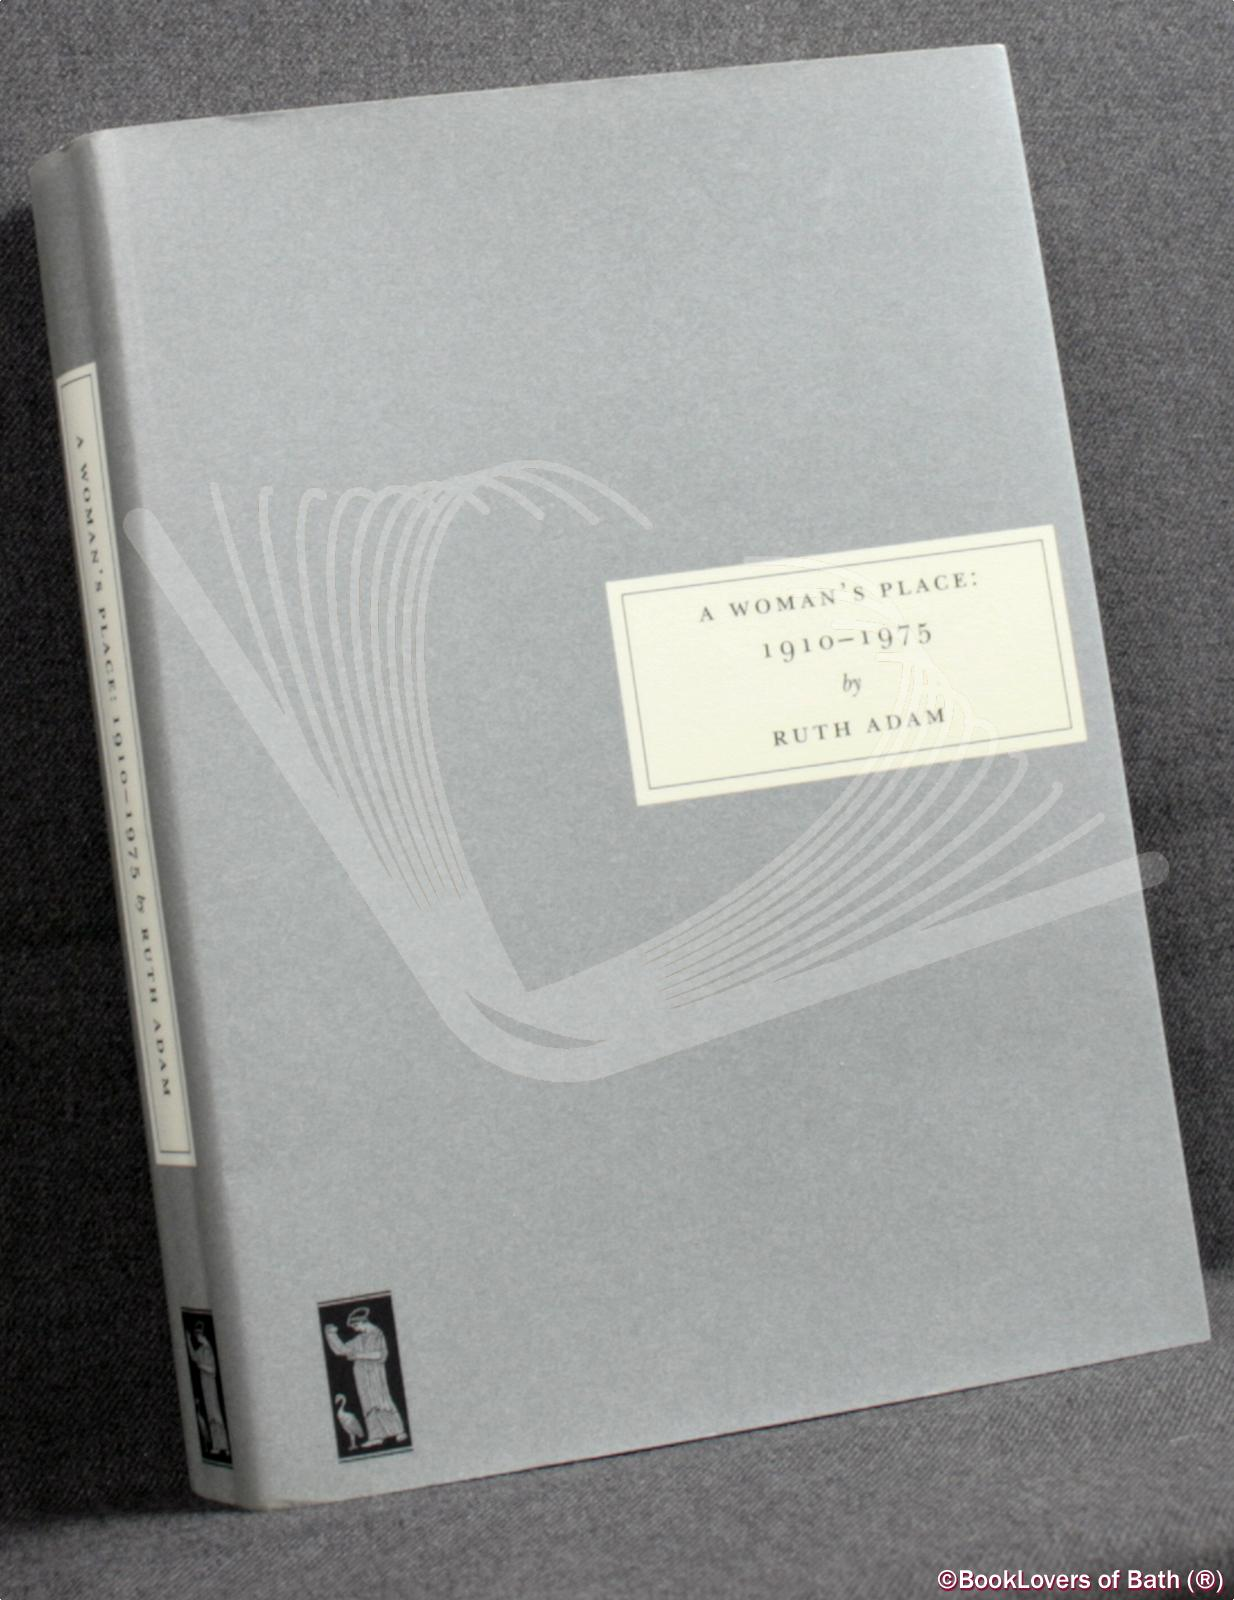 A Woman's Place, 1910-1975: With a New Afterword by Yvonne Roberts - Ruth Adam